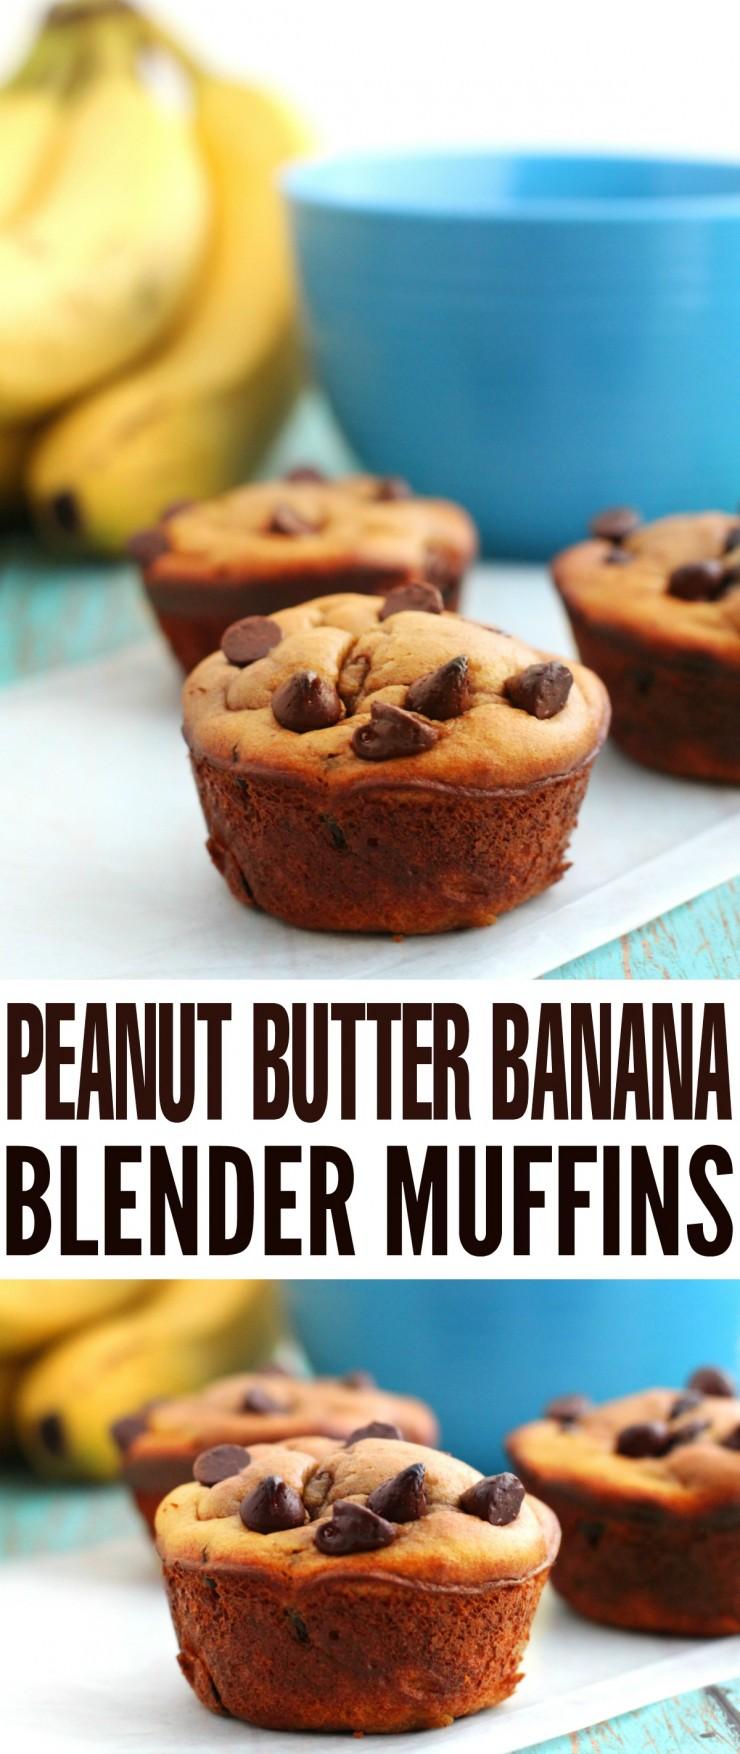 These Grain Free Peanut Butter Banana Blender Muffins are an easy and healthy breakfast option the whole family can enjoy.